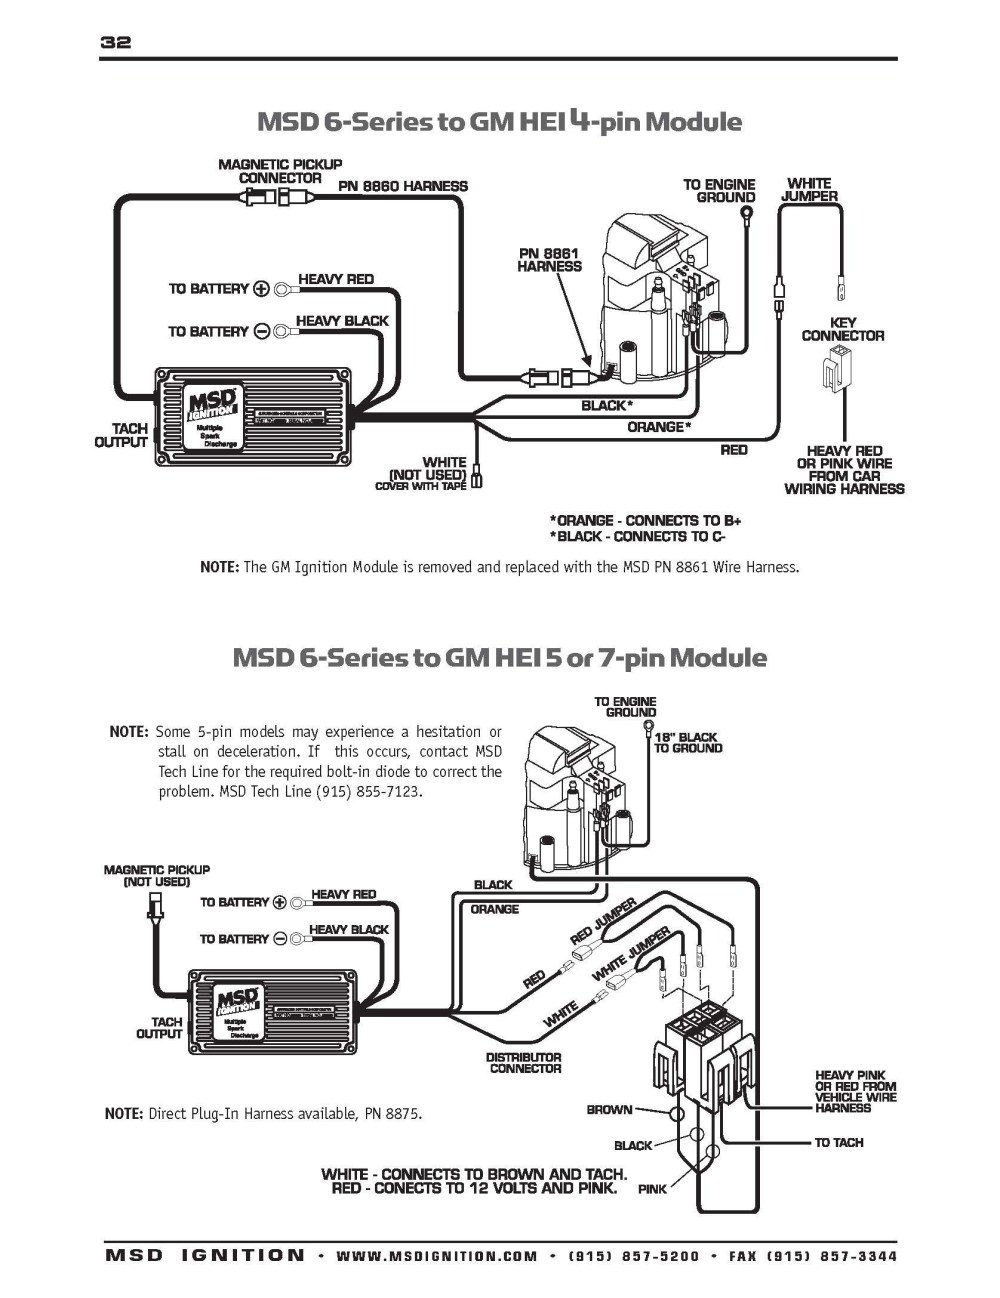 medium resolution of msd 6a wiring harness wiring diagram fascinatingmsd 6al wiring diagram free download wiring diagram expert msd